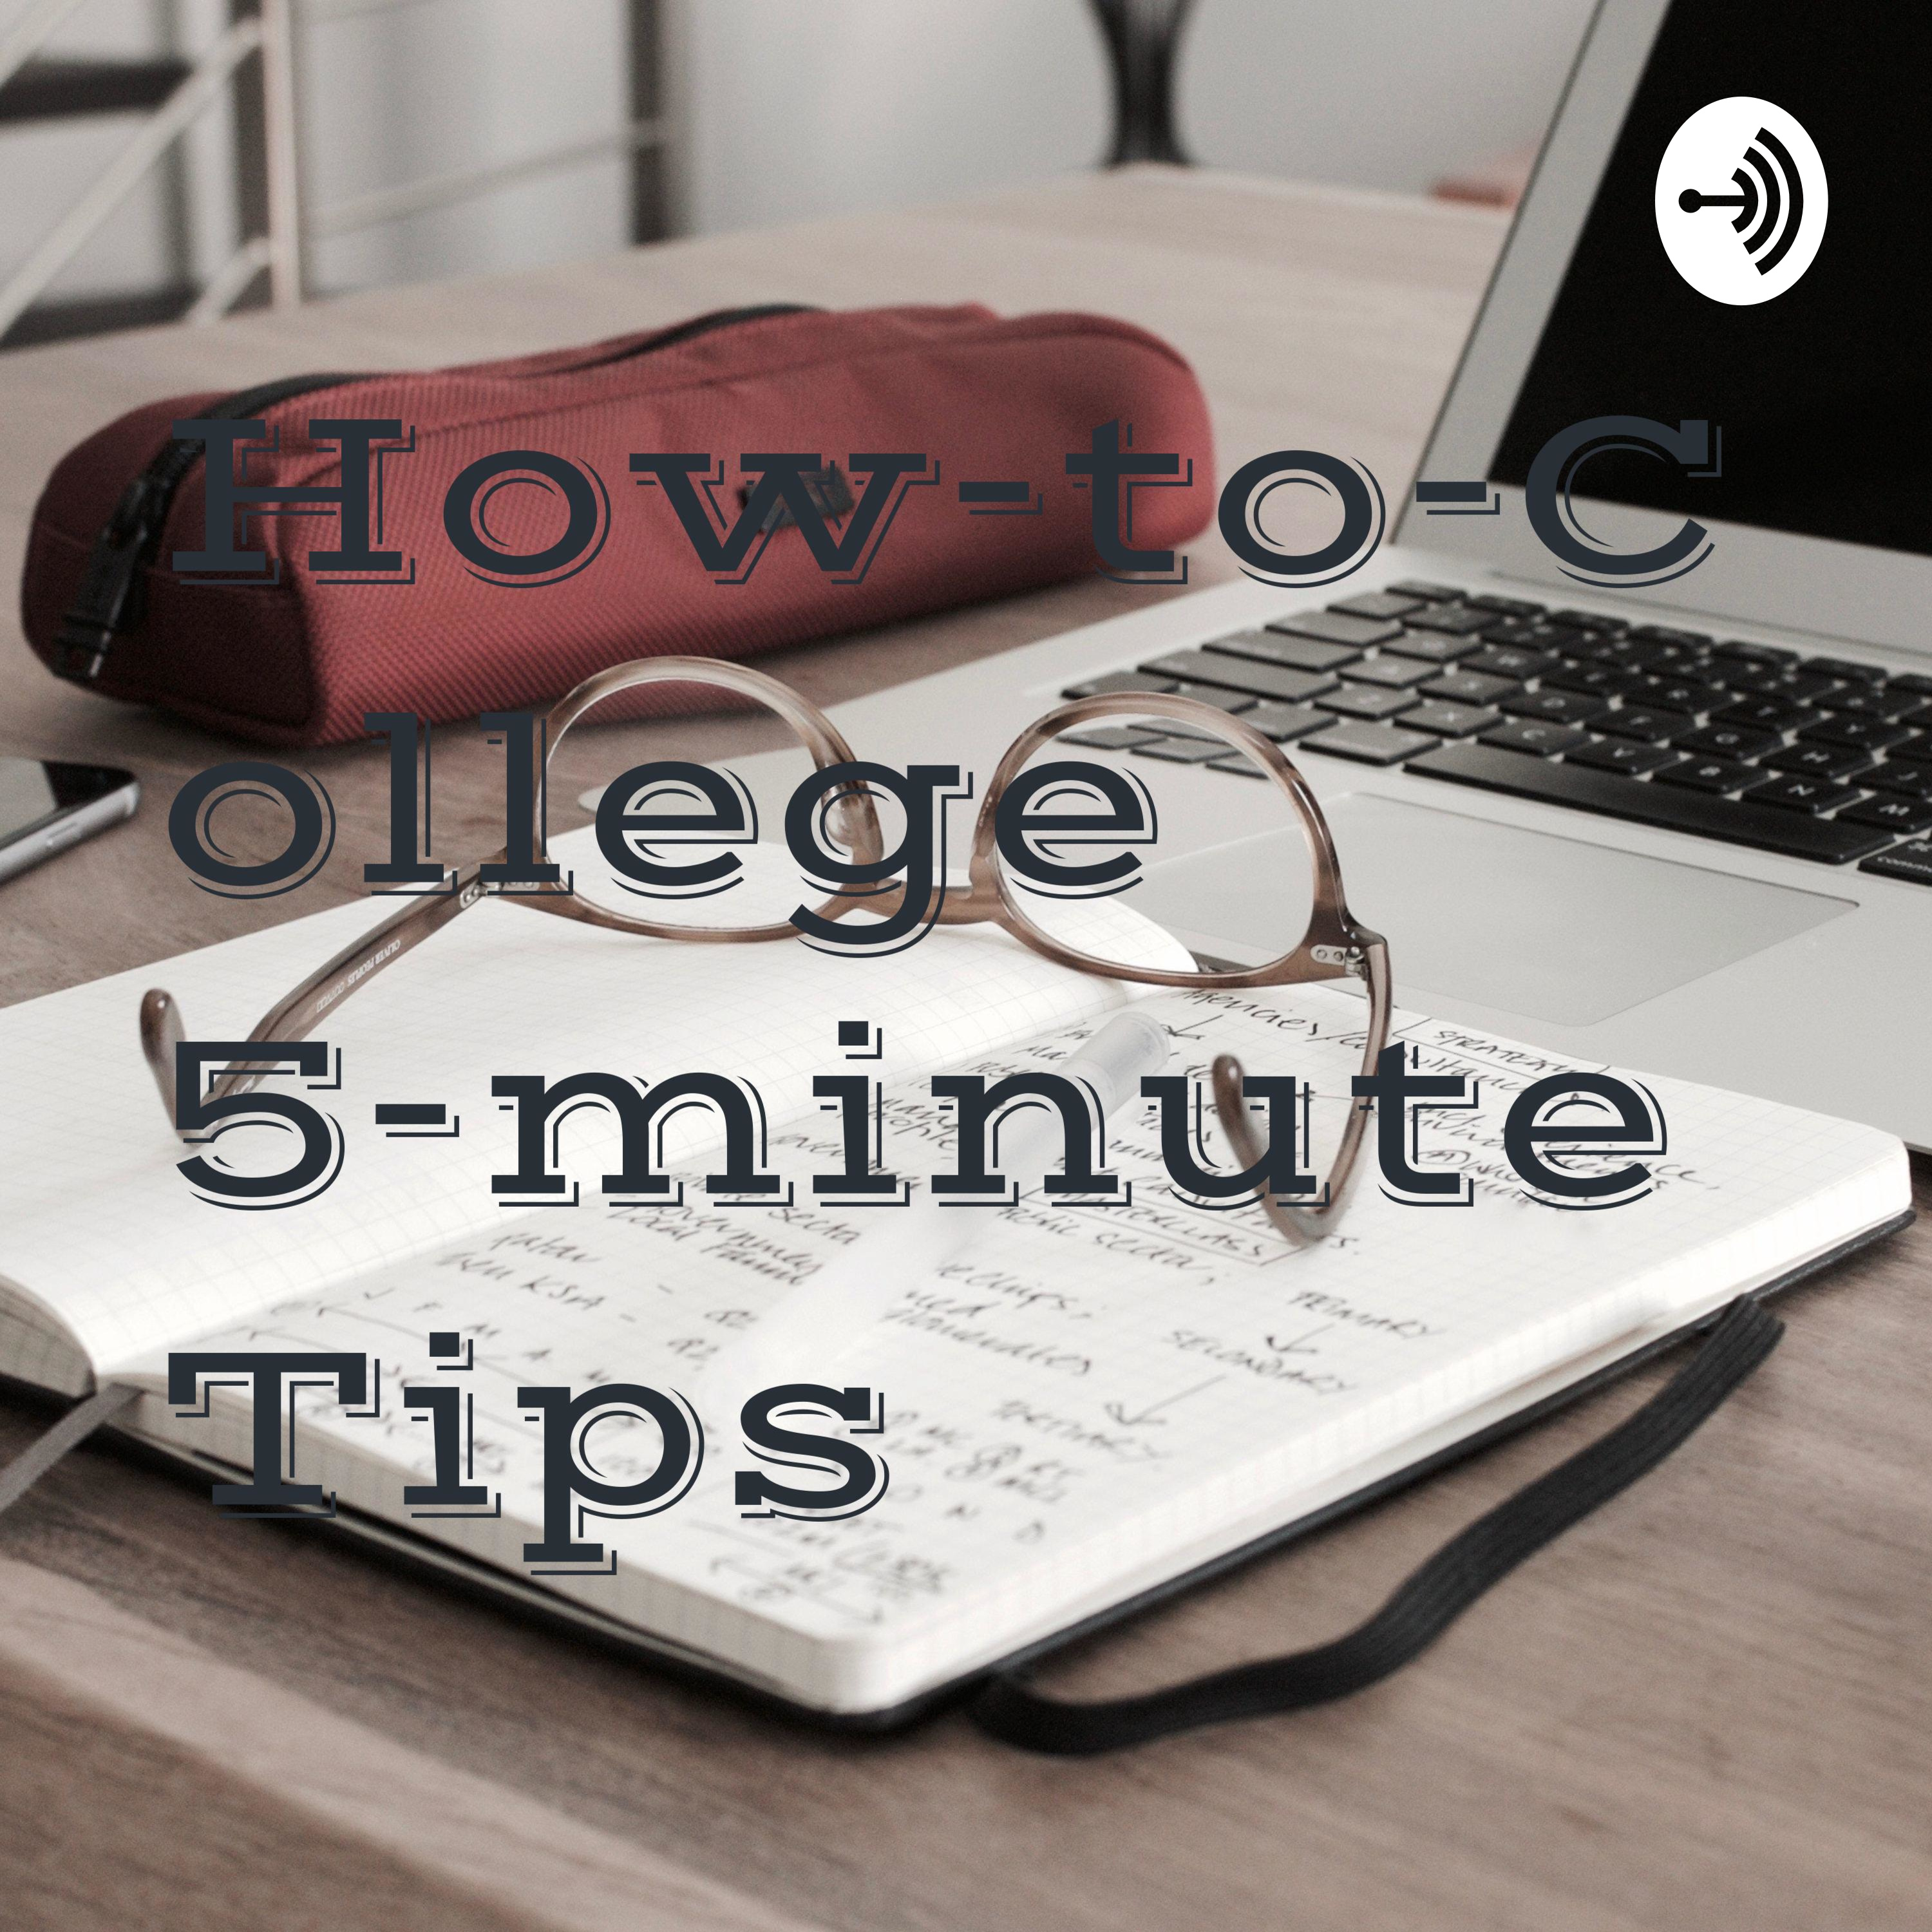 How-to-College 5-minute Tips